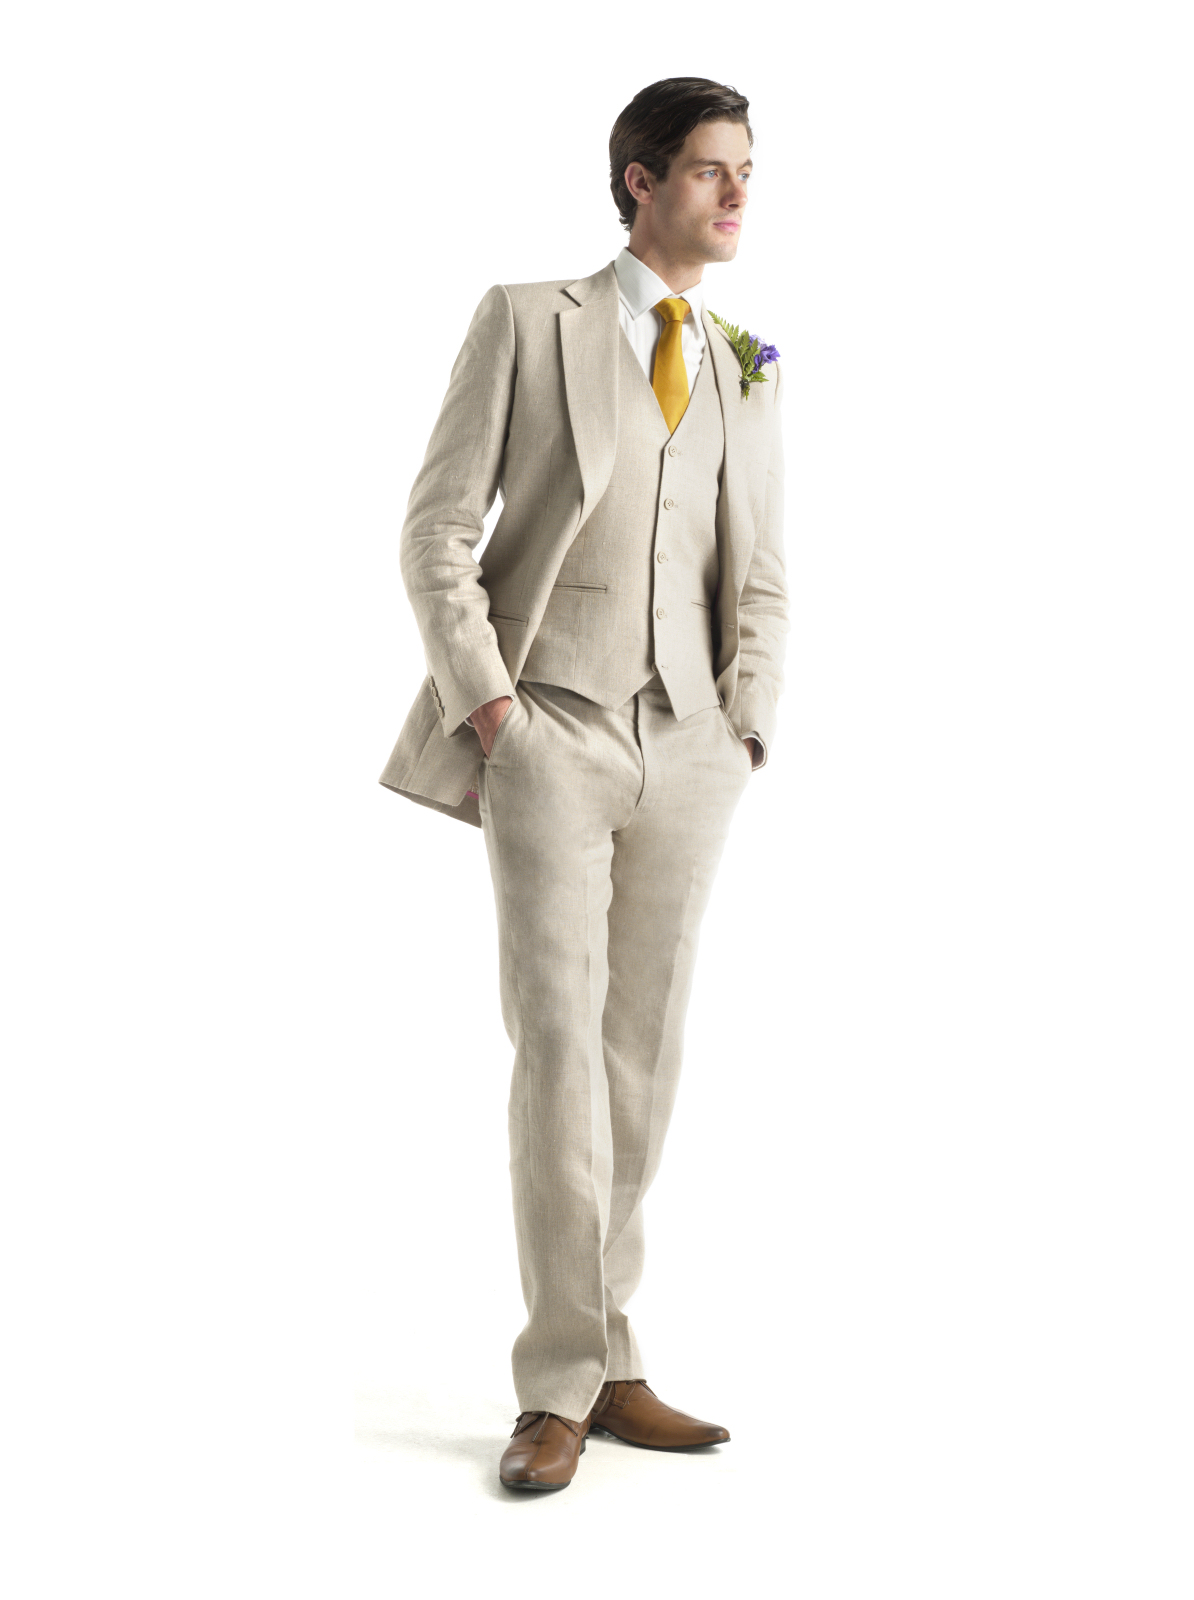 Linen Three Piece from A Suit That Fits